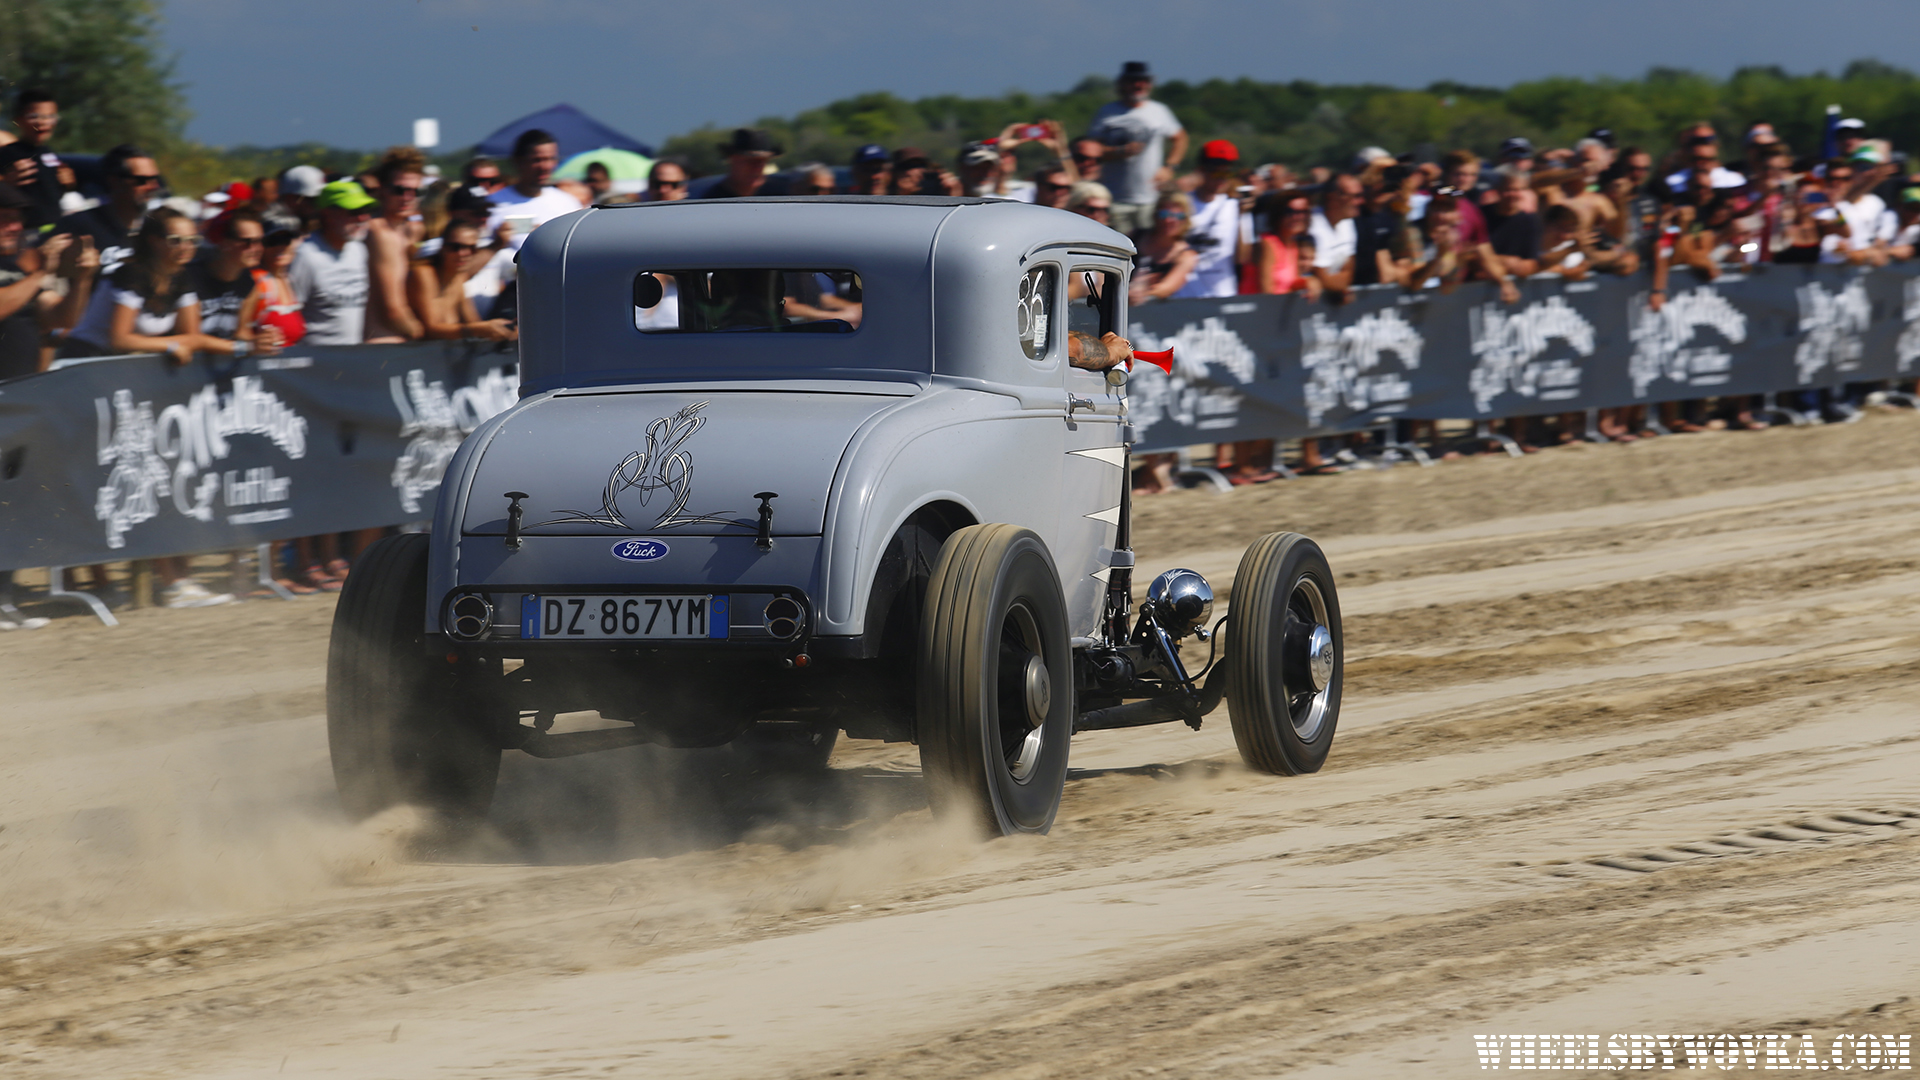 roll-flat-venice-hot-rod-beach-race-trog-by-wheelsbywovka-50